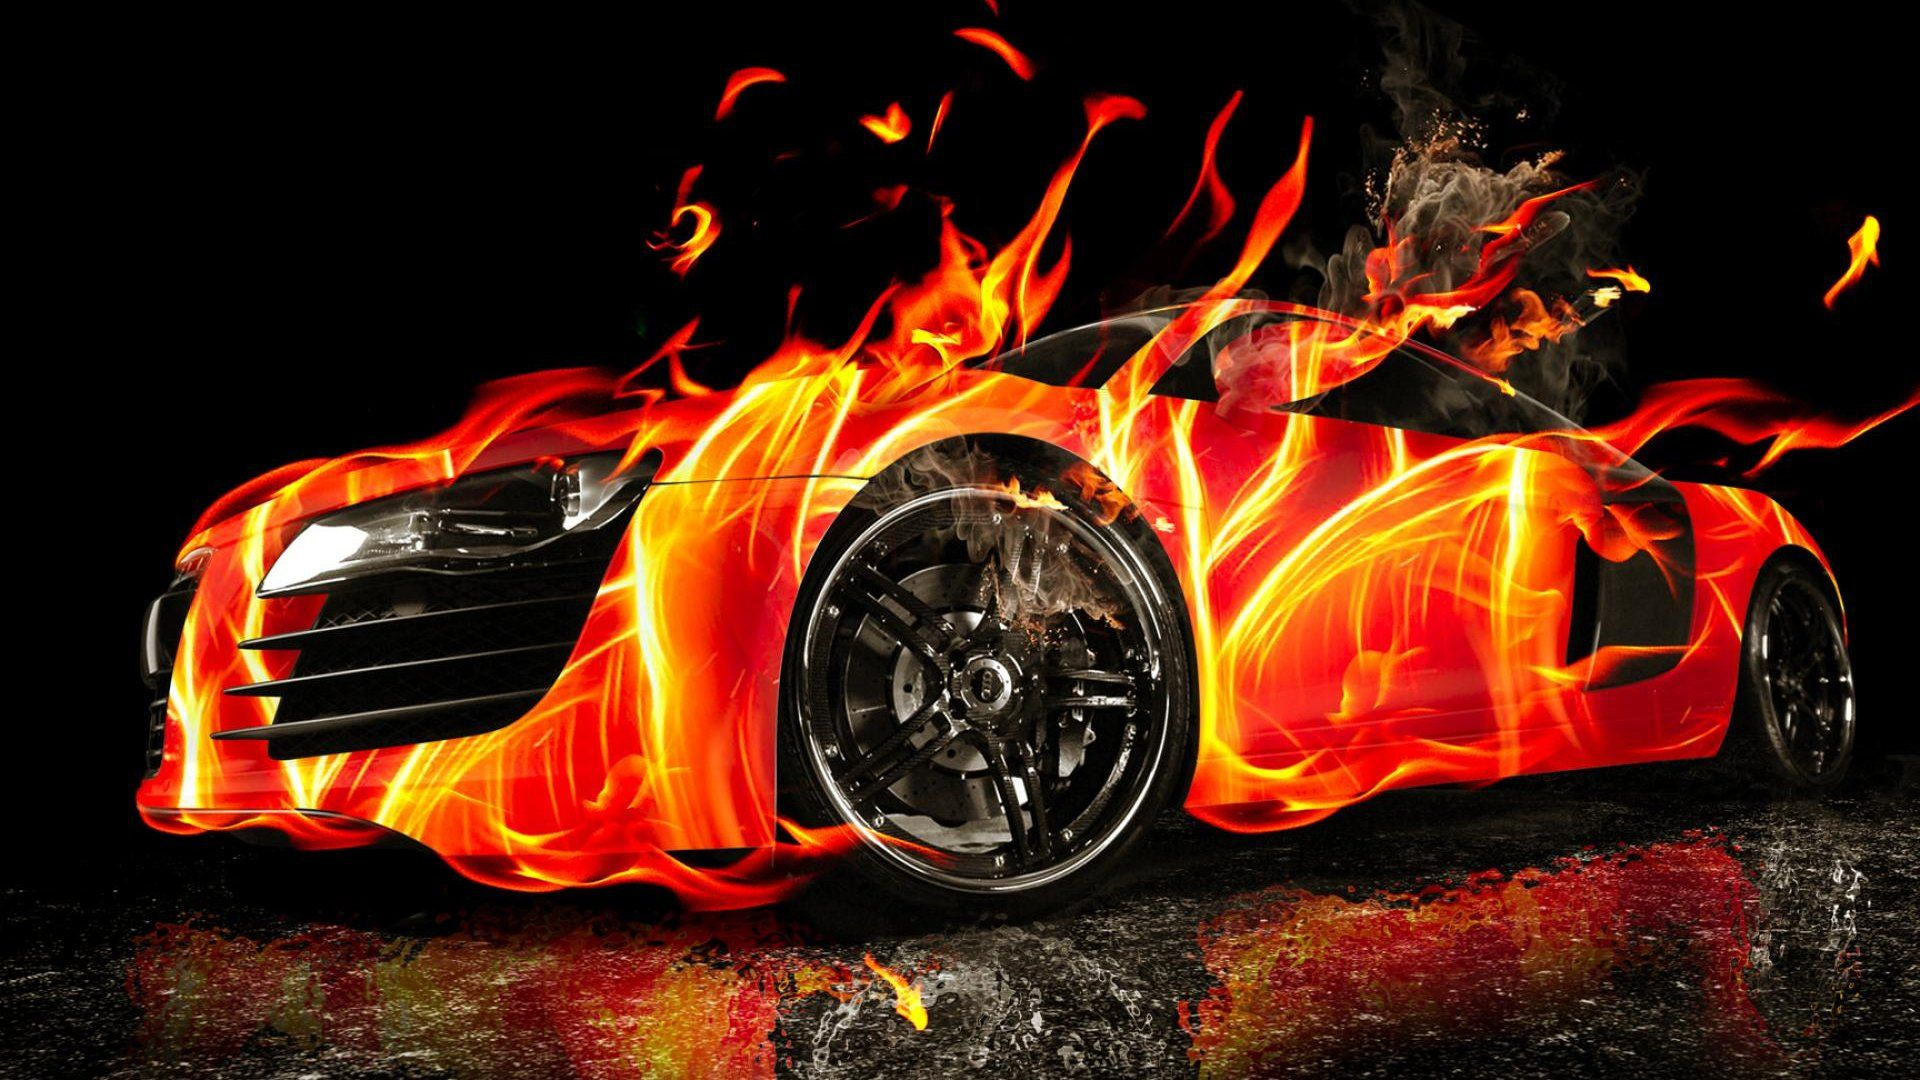 Hot Wheels Car Wallpaper 1920 1080 High Definition Wallpaper Daily Screens Id 5206 Sports Car Wallpaper Car Wallpapers Cool Sports Cars